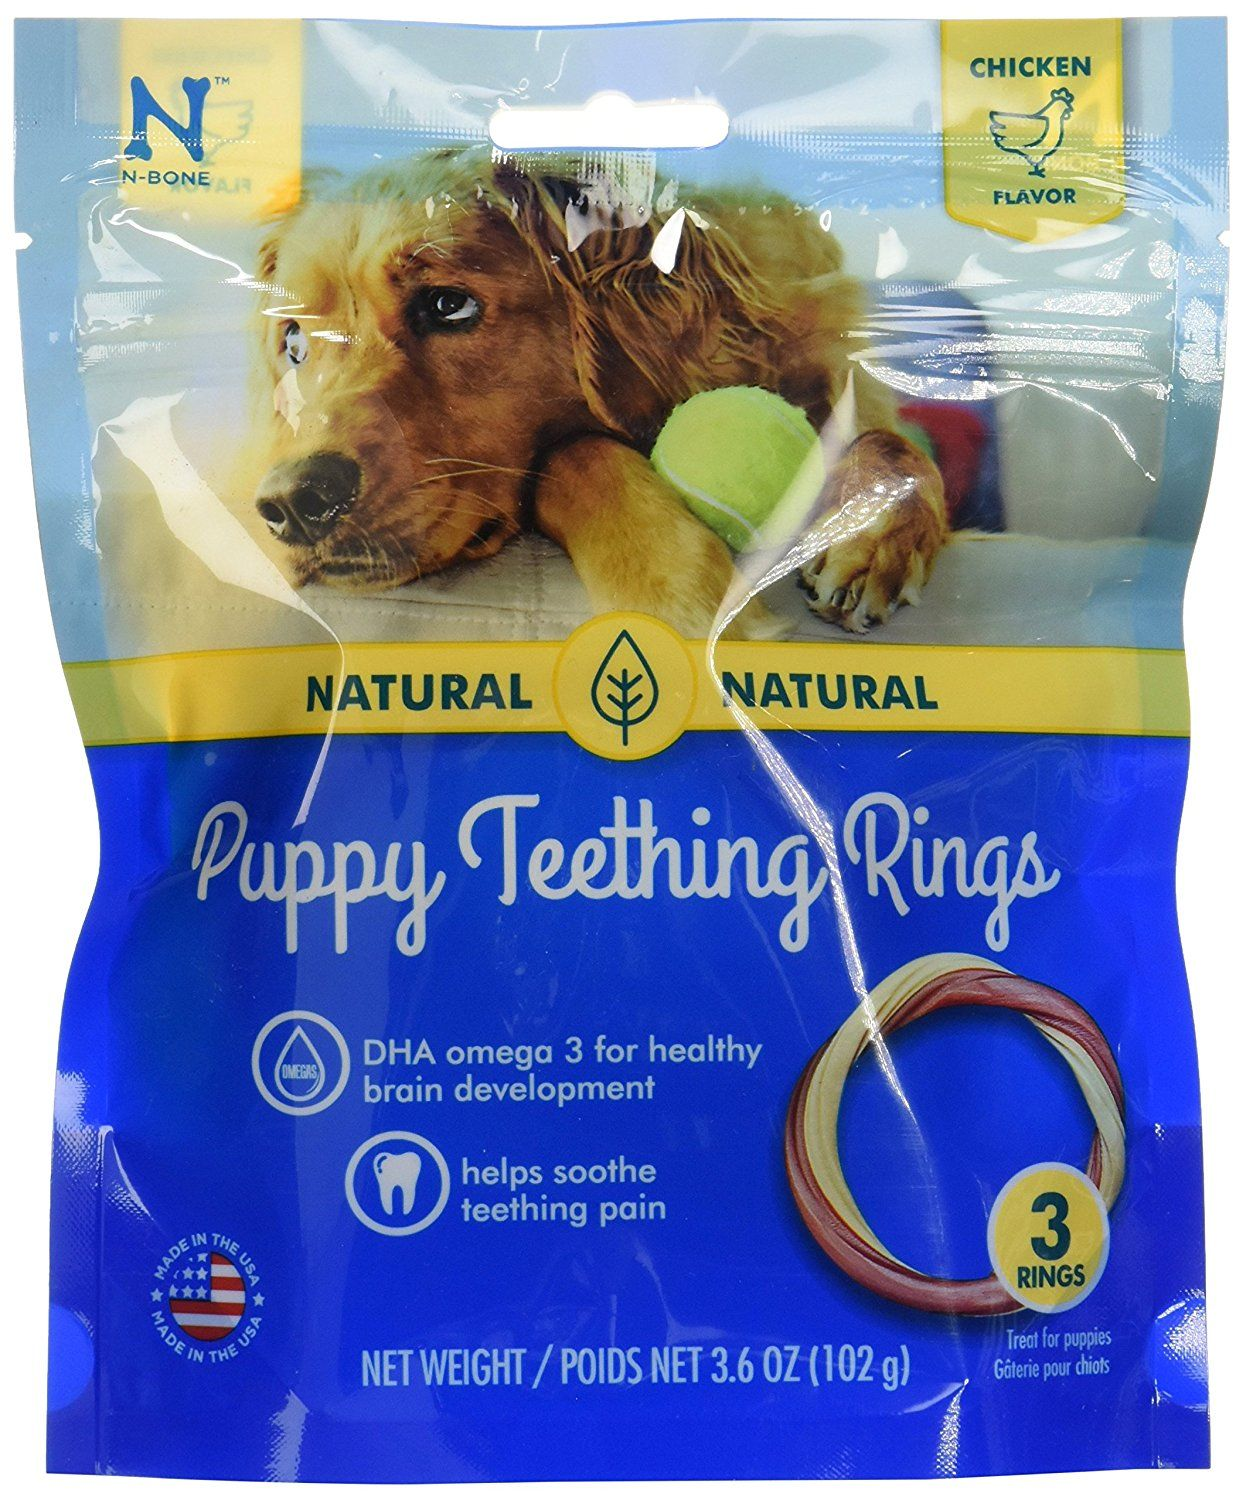 N Bone Puppy Teething Ring Chicken Flavor 3 Pack Don T Get Left Behind See This Great Dog Product Dog Food Types Puppy Teething Puppies Chicken Flavors